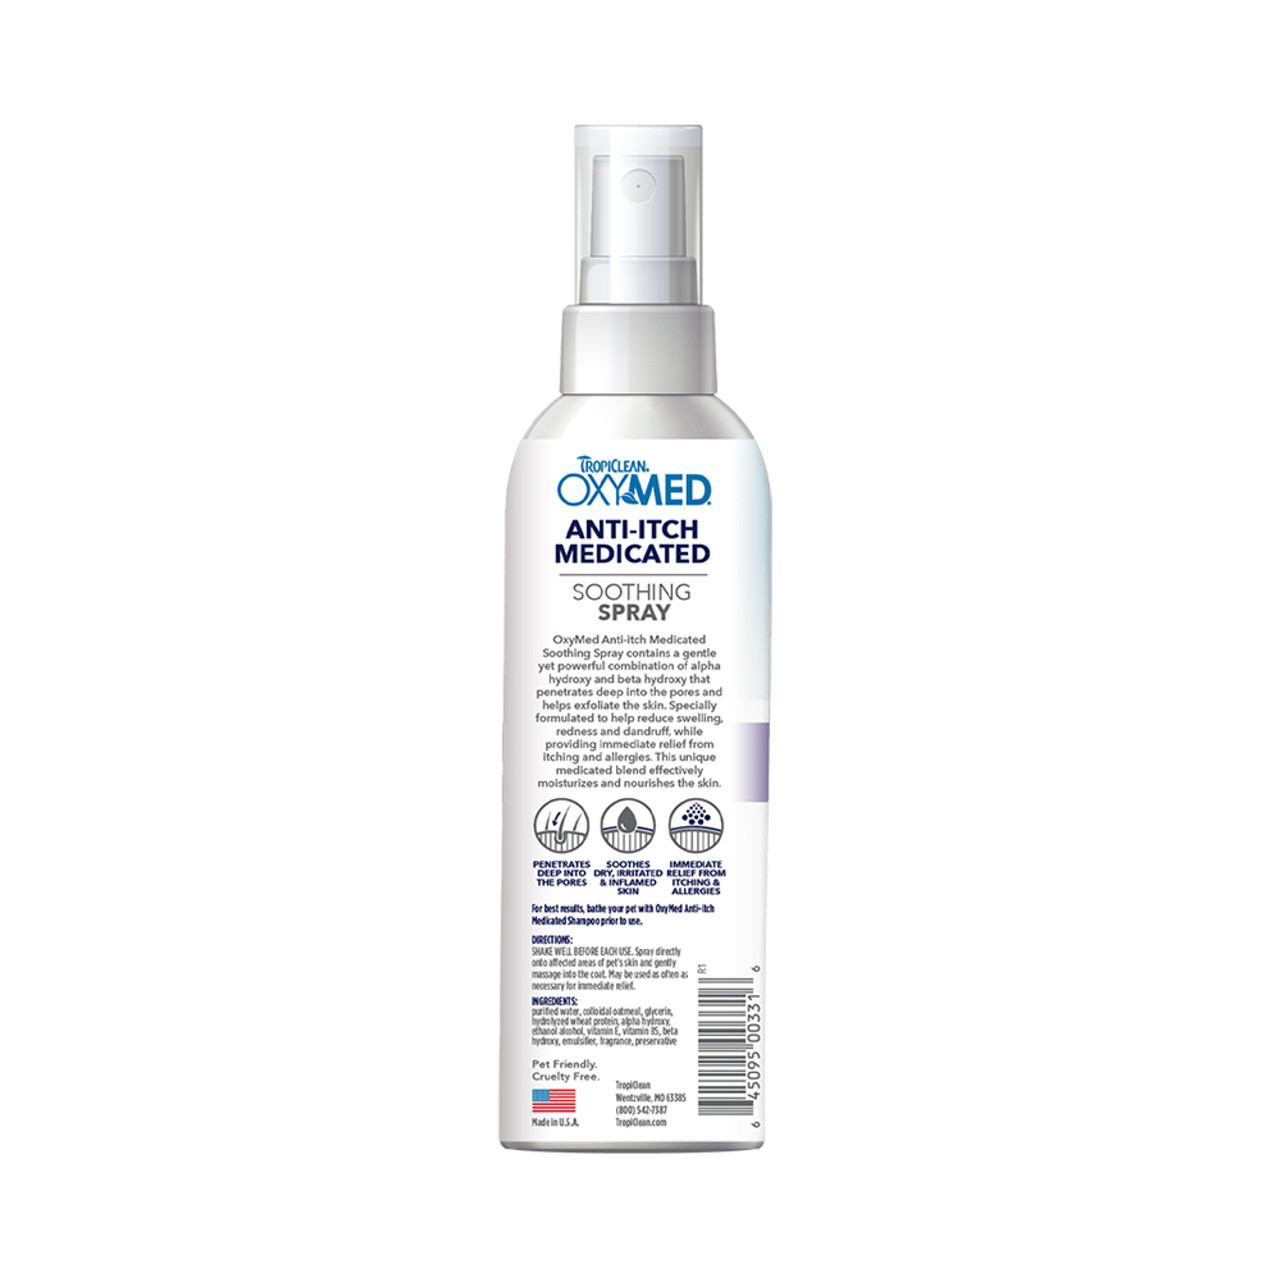 Tropiclean OxyMed Anti-Itch Medicated Soothing Spray for Dogs & Cats